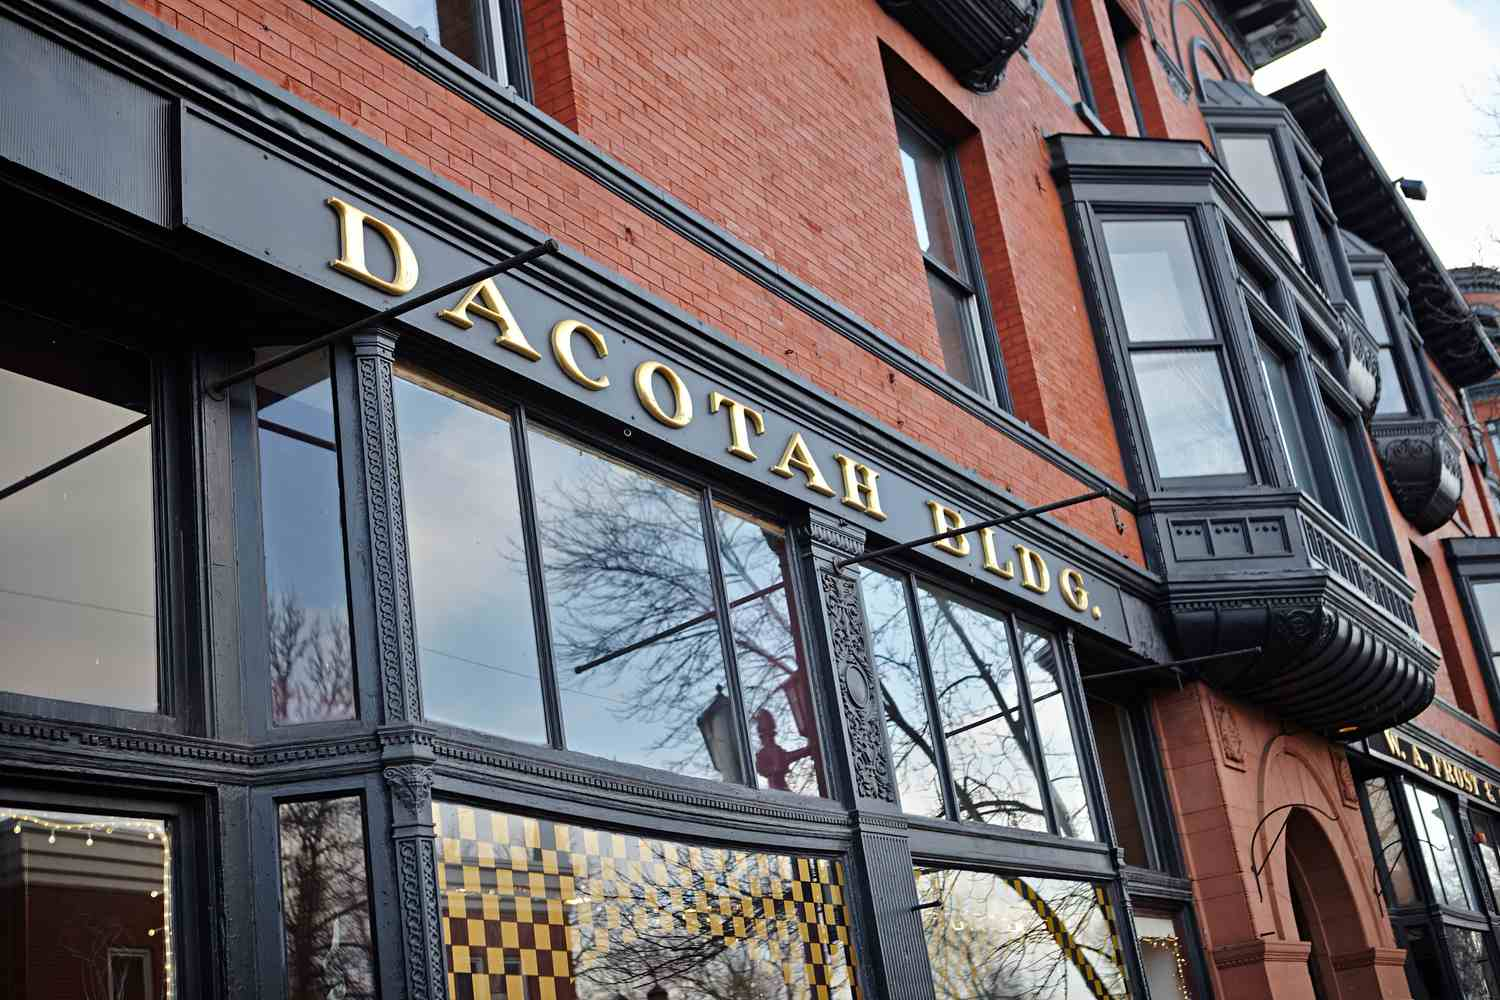 The Dacotah Building